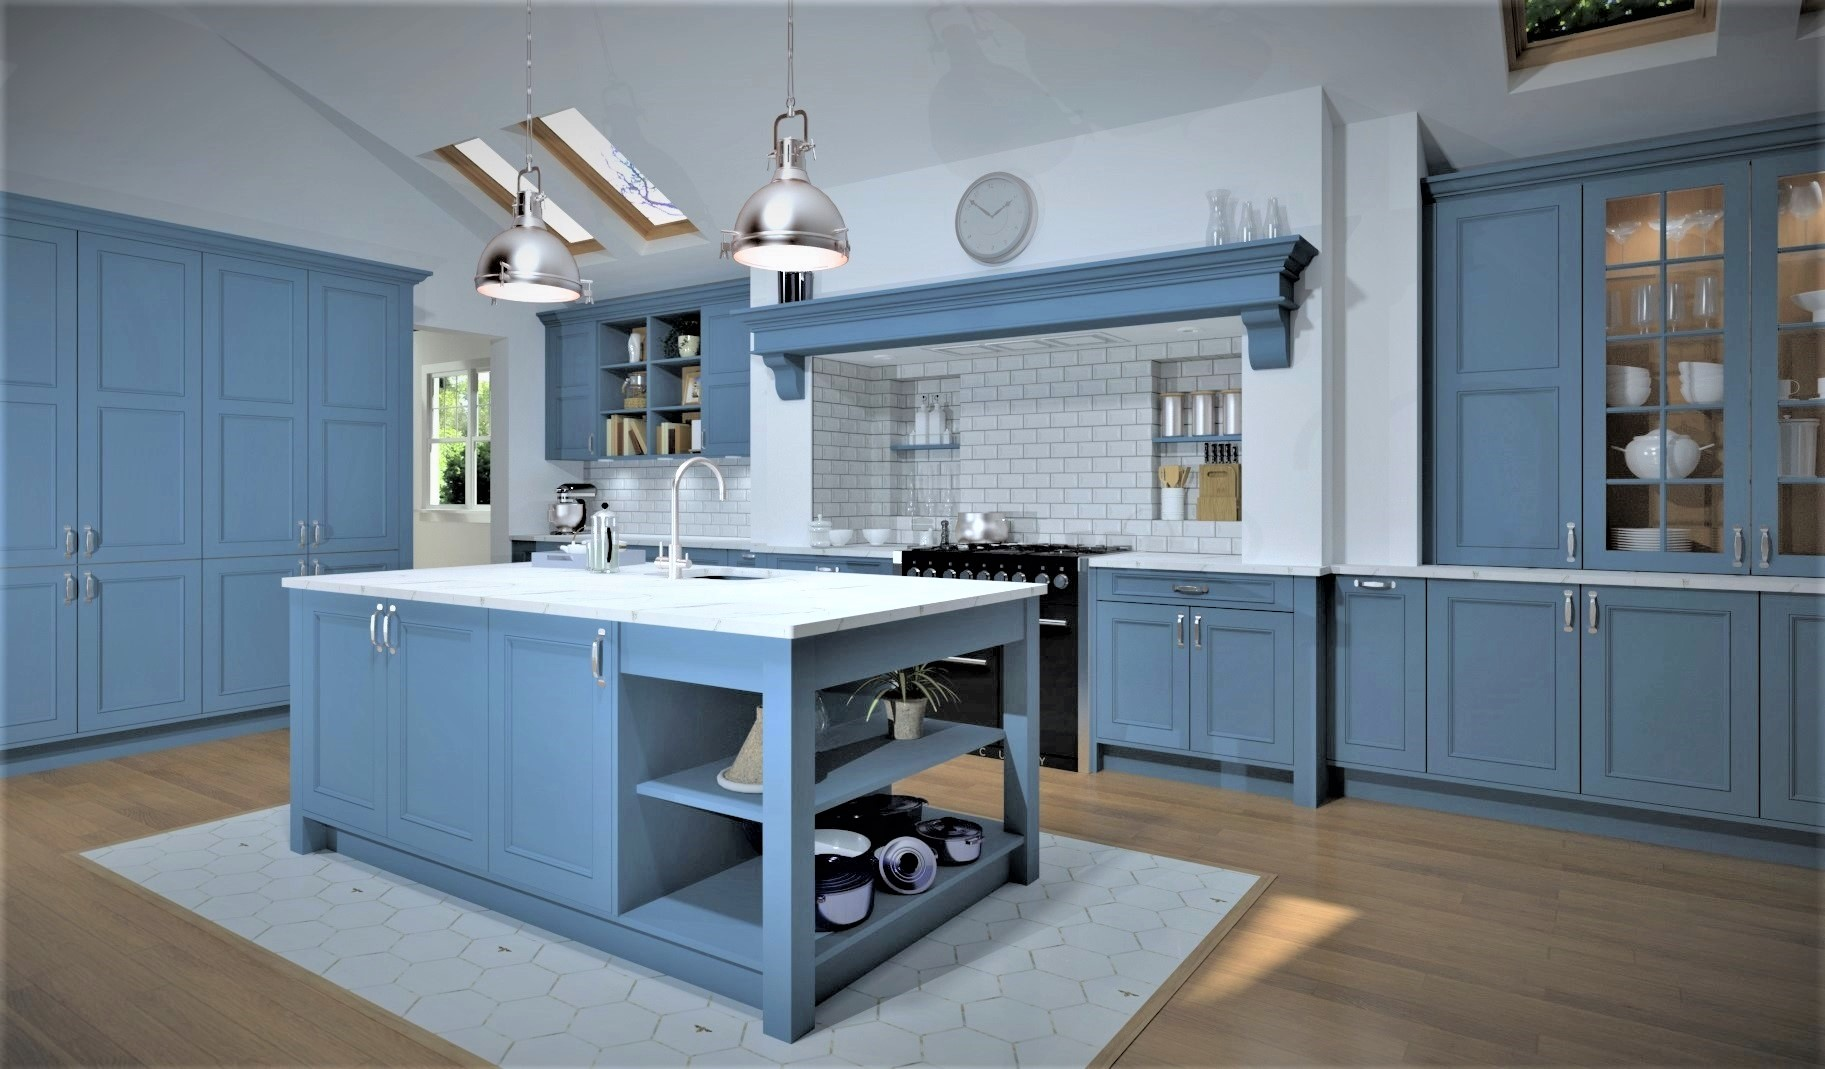 Uform Blue Kitchen Kitchen Render.jpeg